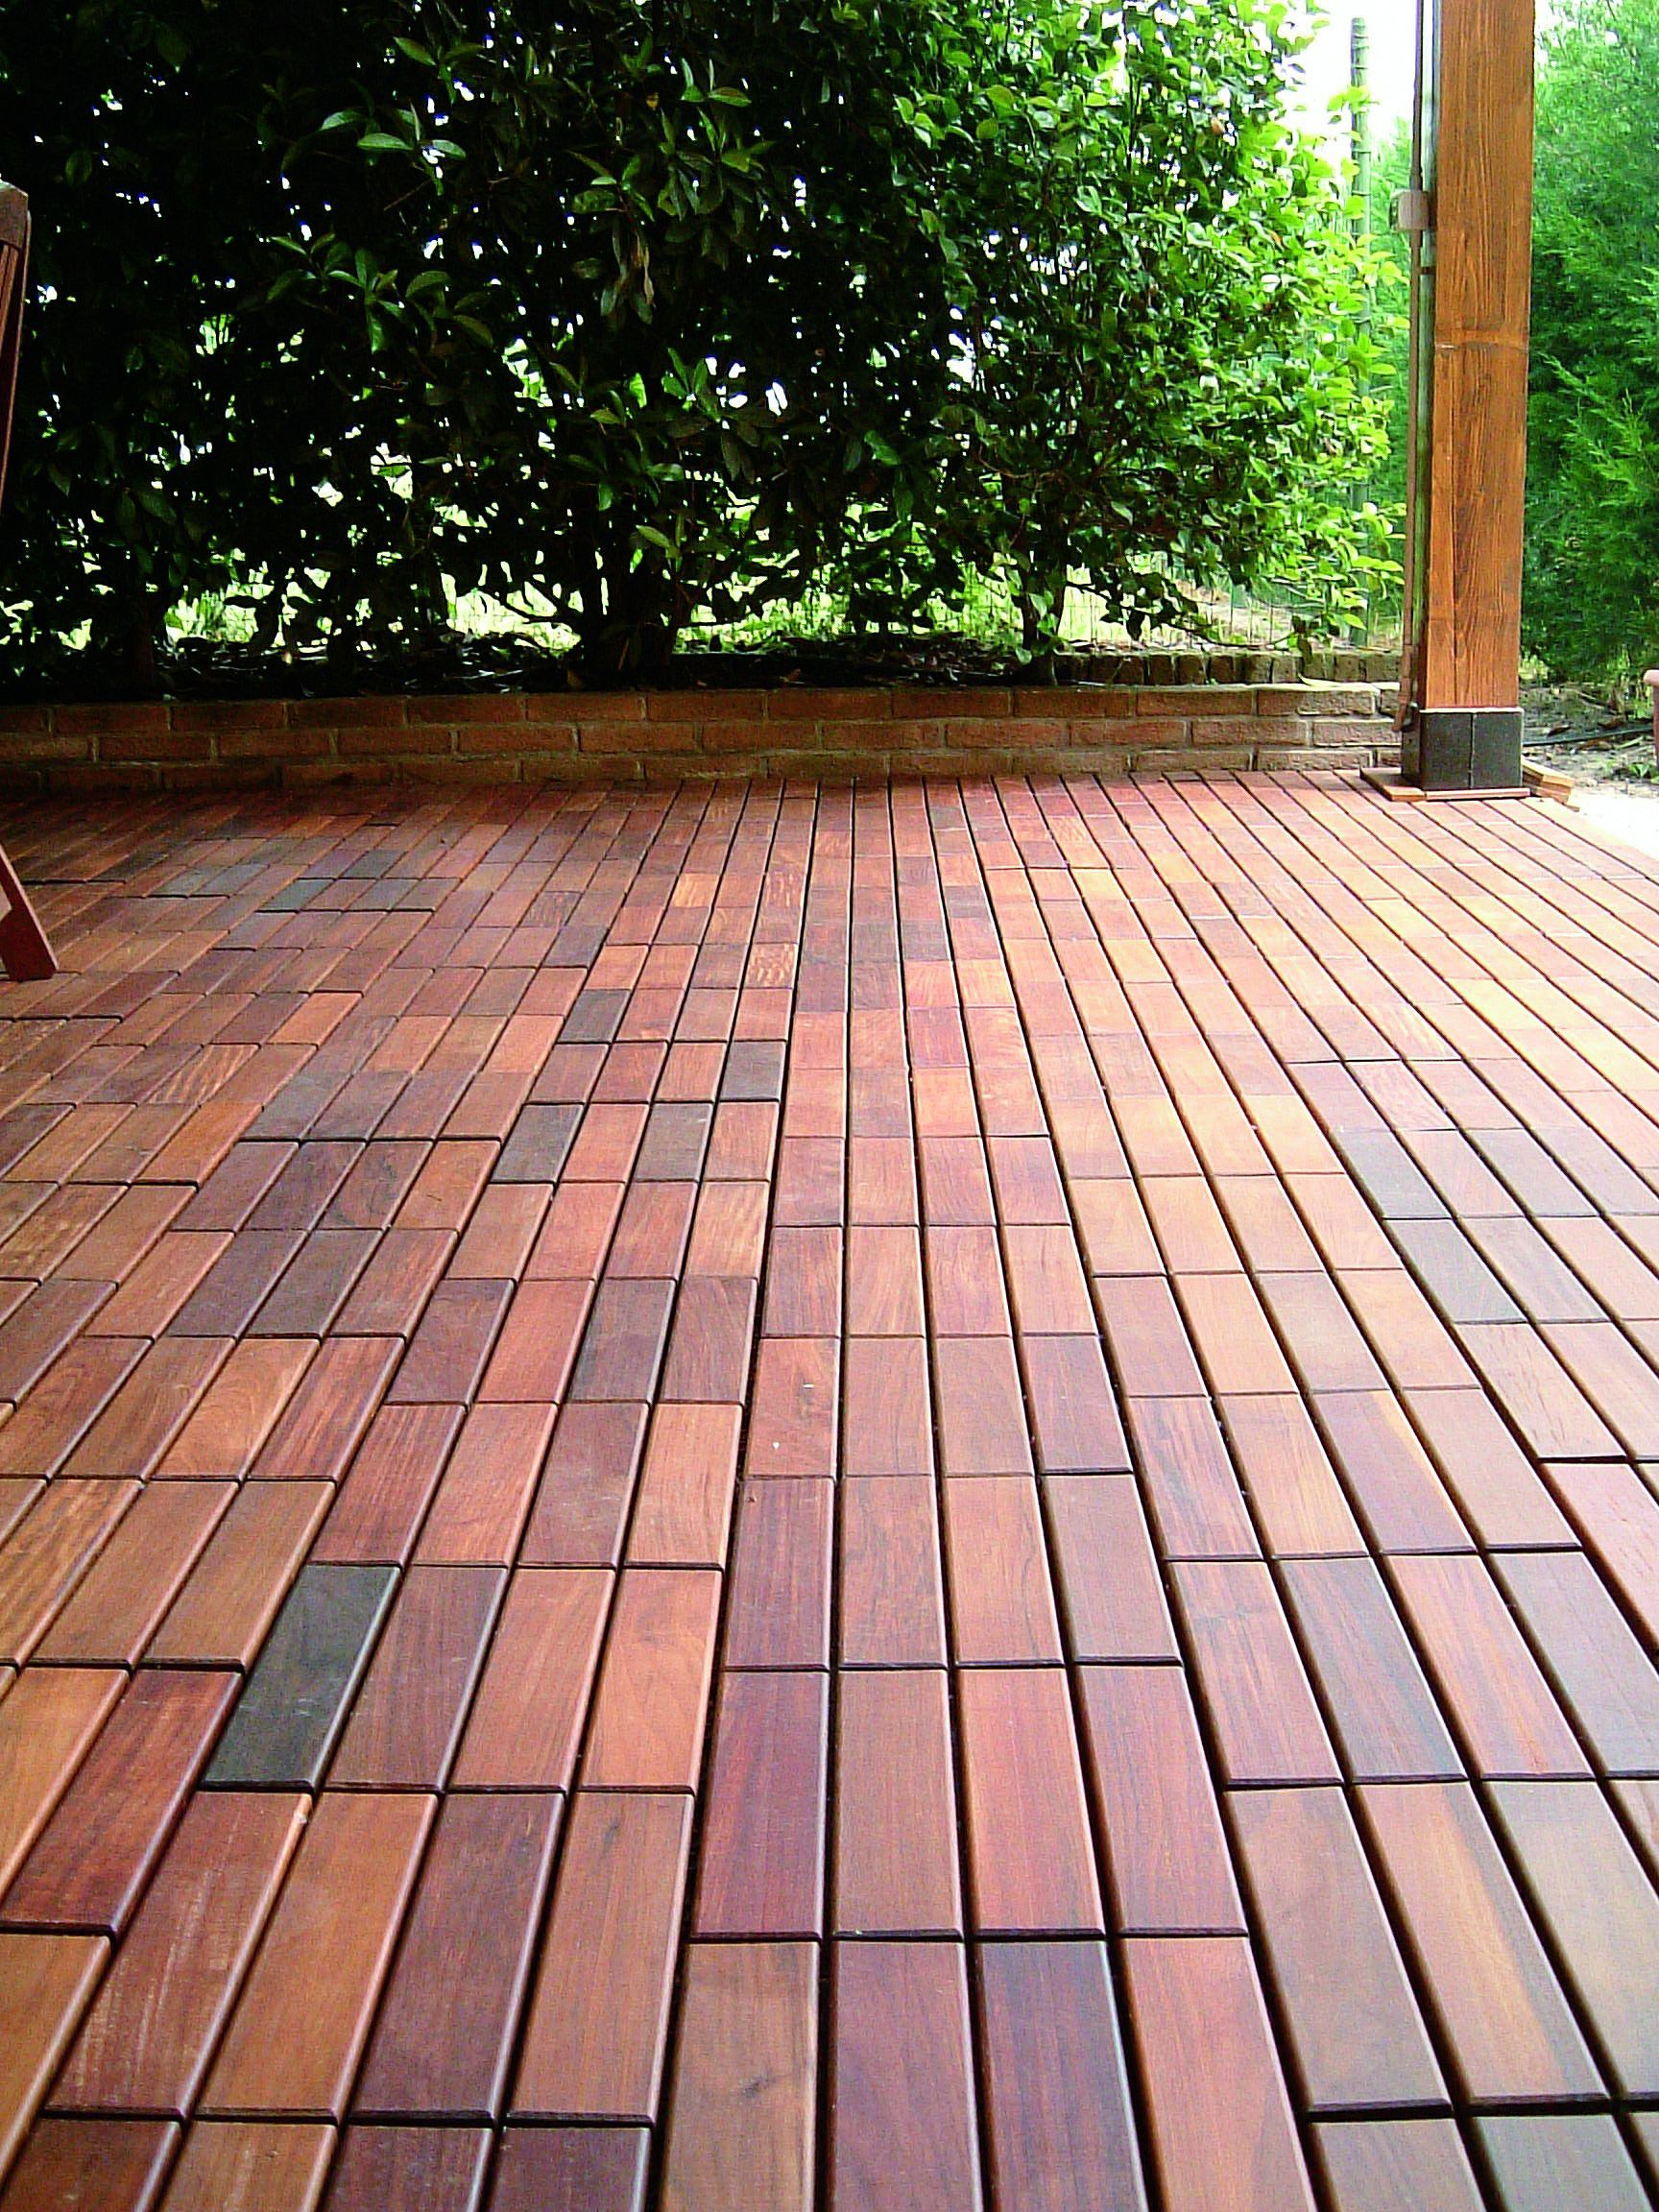 outdoor flooring ideas Google Search Patio flooring